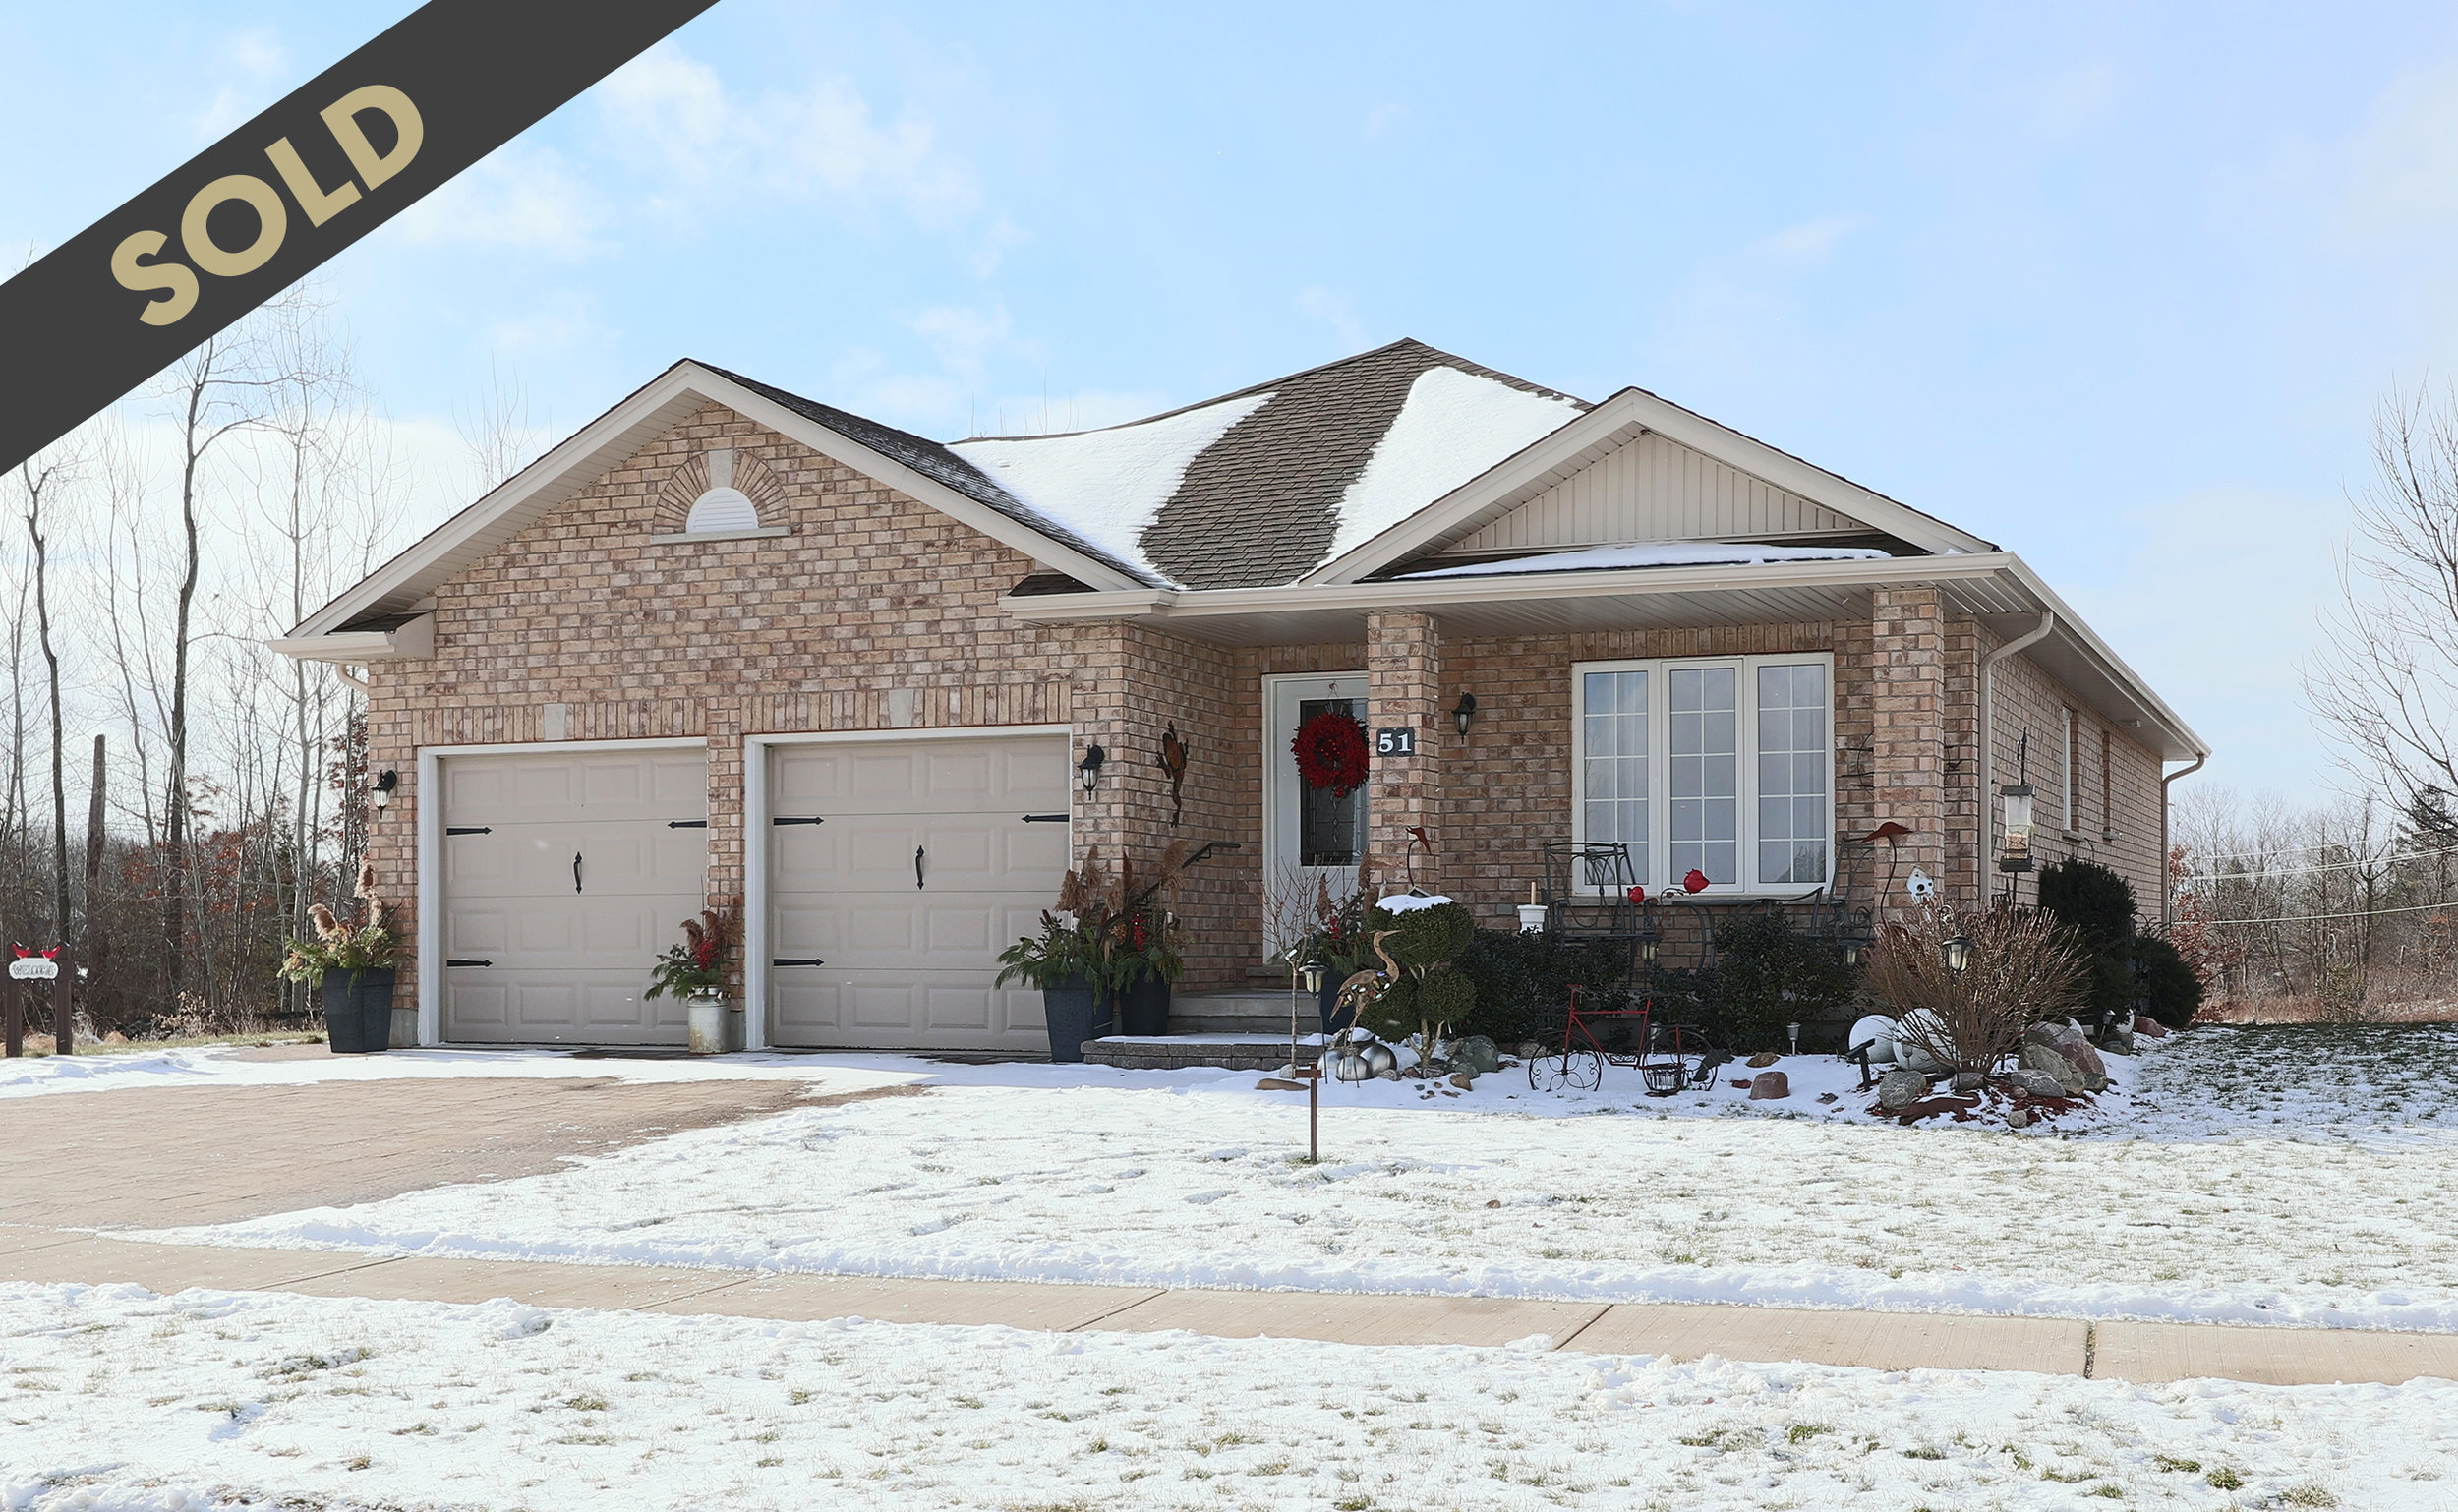 - 51 Winders Trail, IngersollSoldAsking $530,0003 beds/2 baths